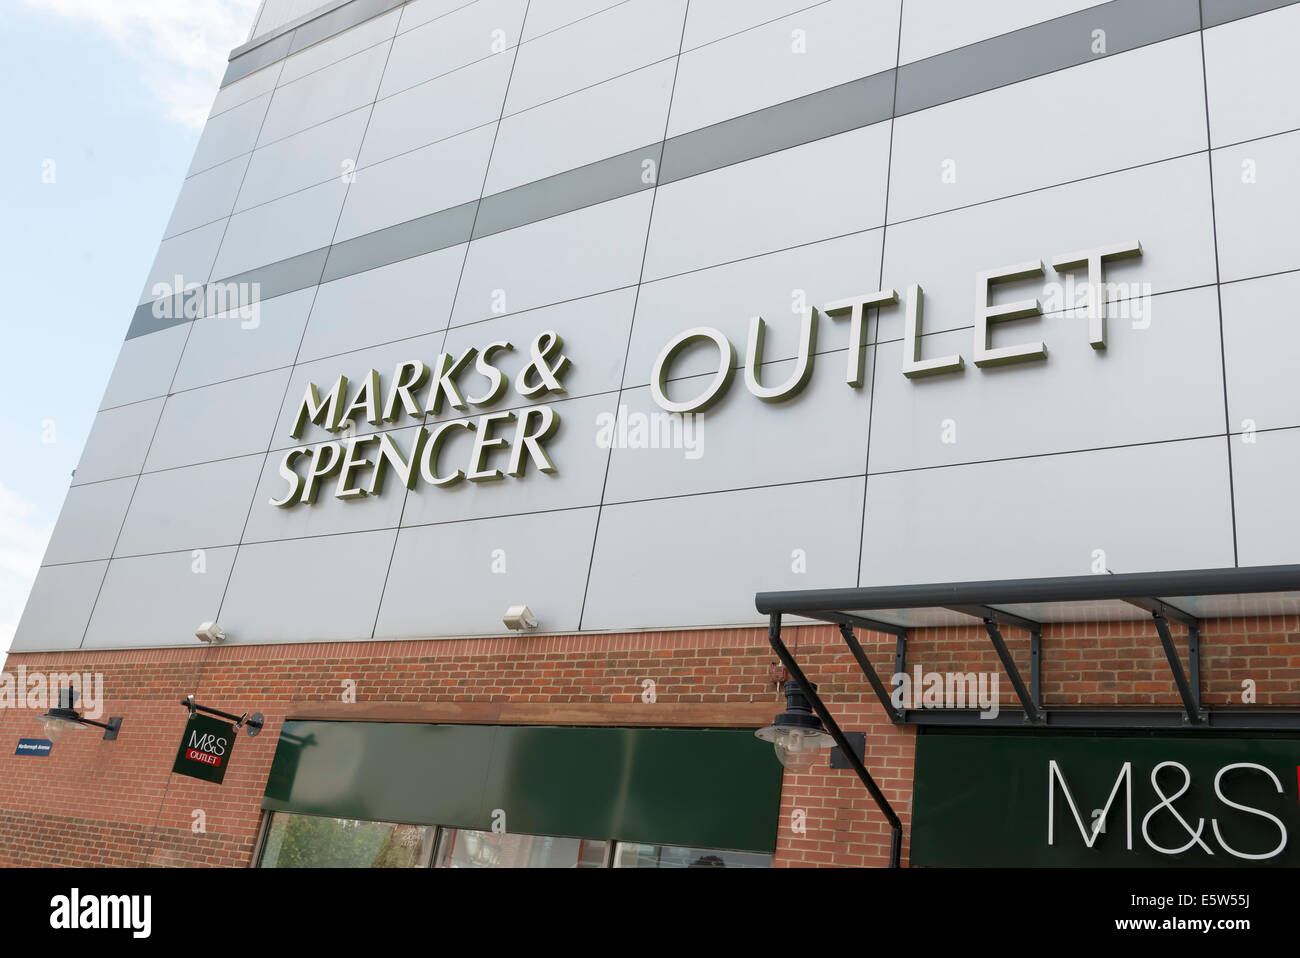 shop front Marks & spencer outlet store at gunwarf quays in portsmouth - Stock Image